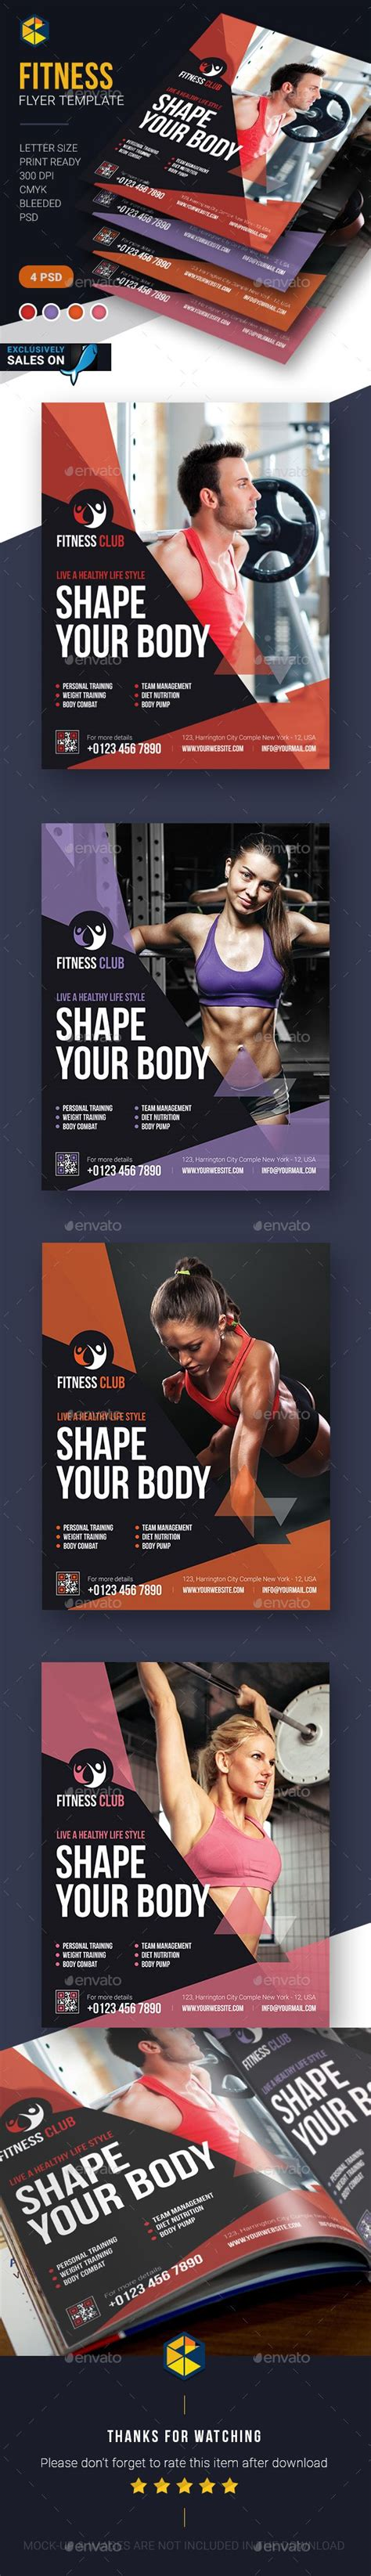 graphicriver flyer download fitness flyer template psd design download http